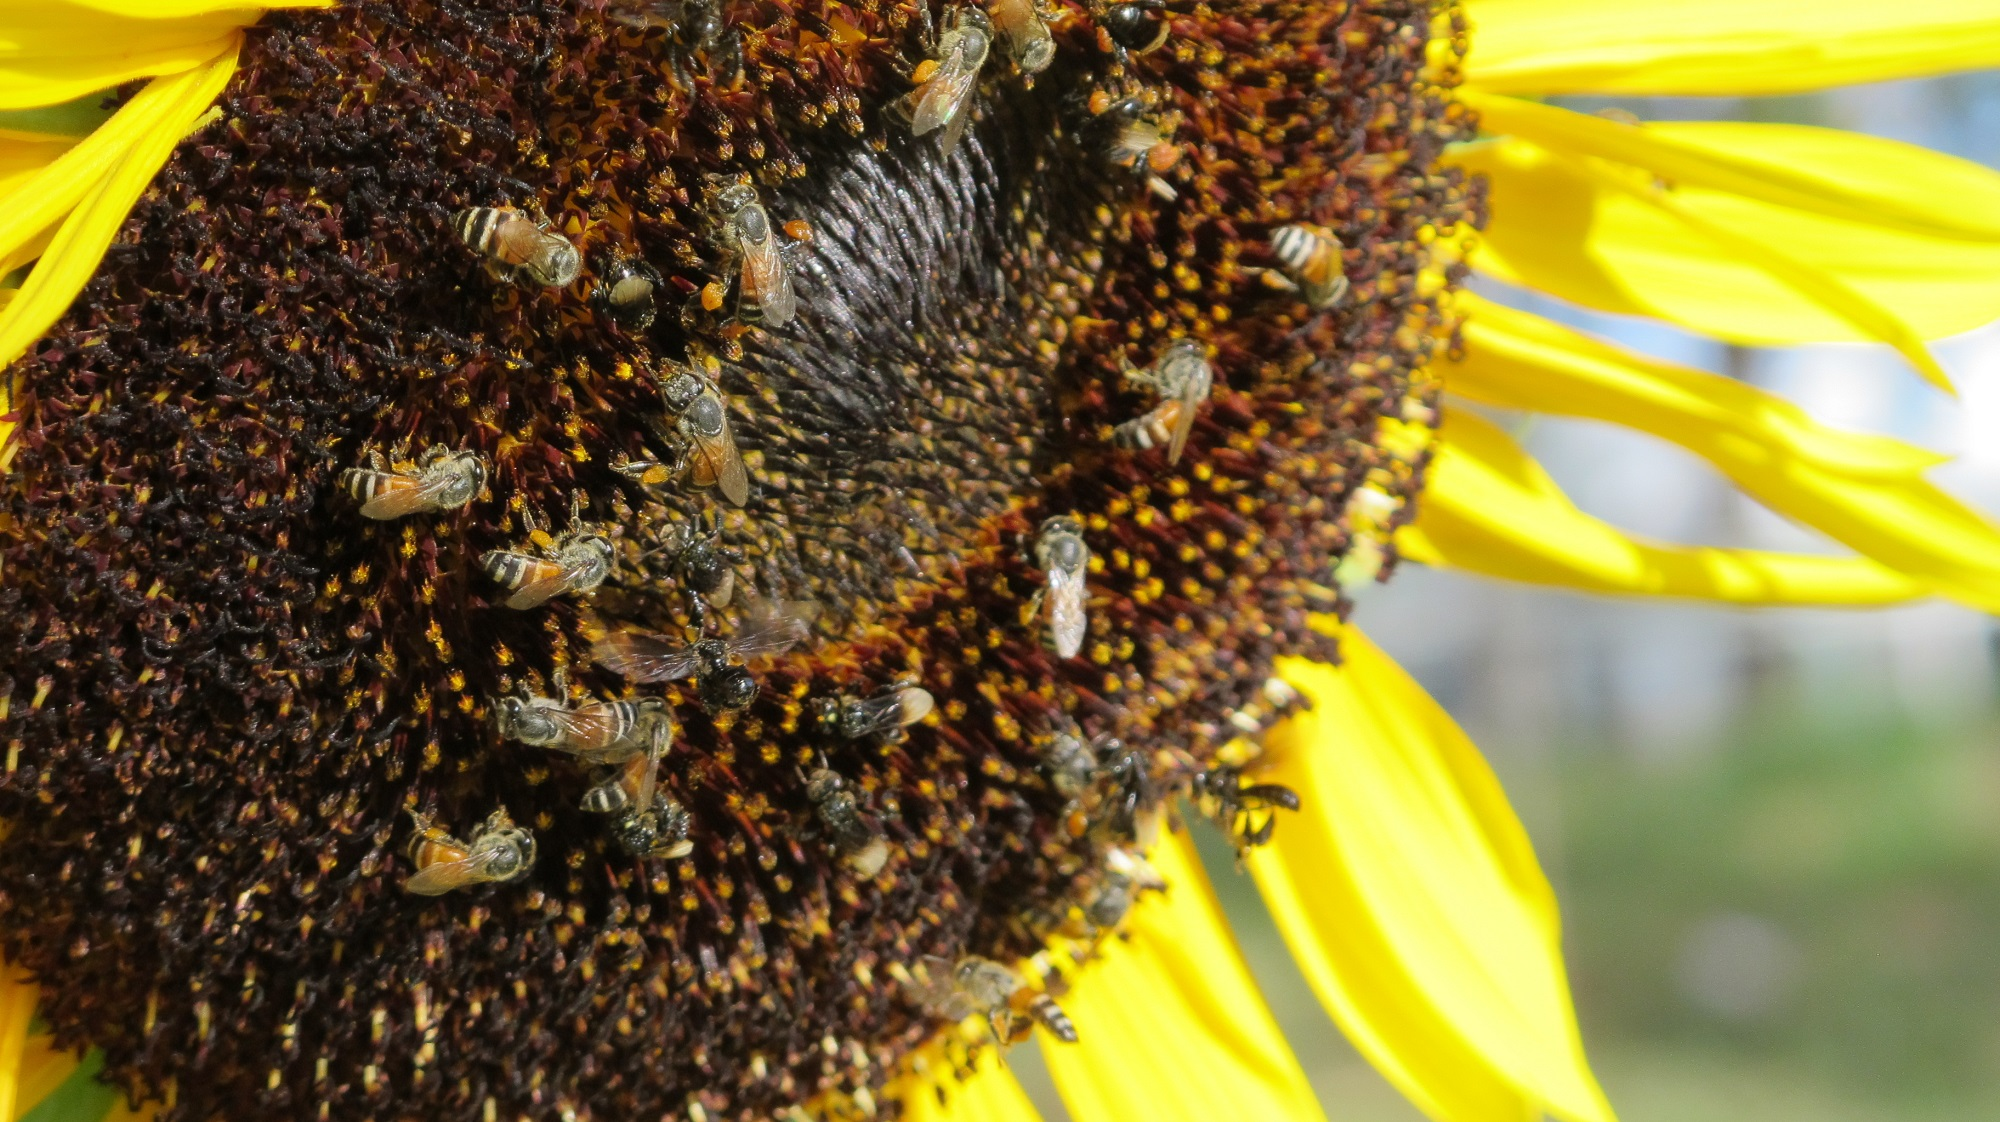 Bee-Removal-Professionals-In-Orange-County-Also-Help-The-Bees